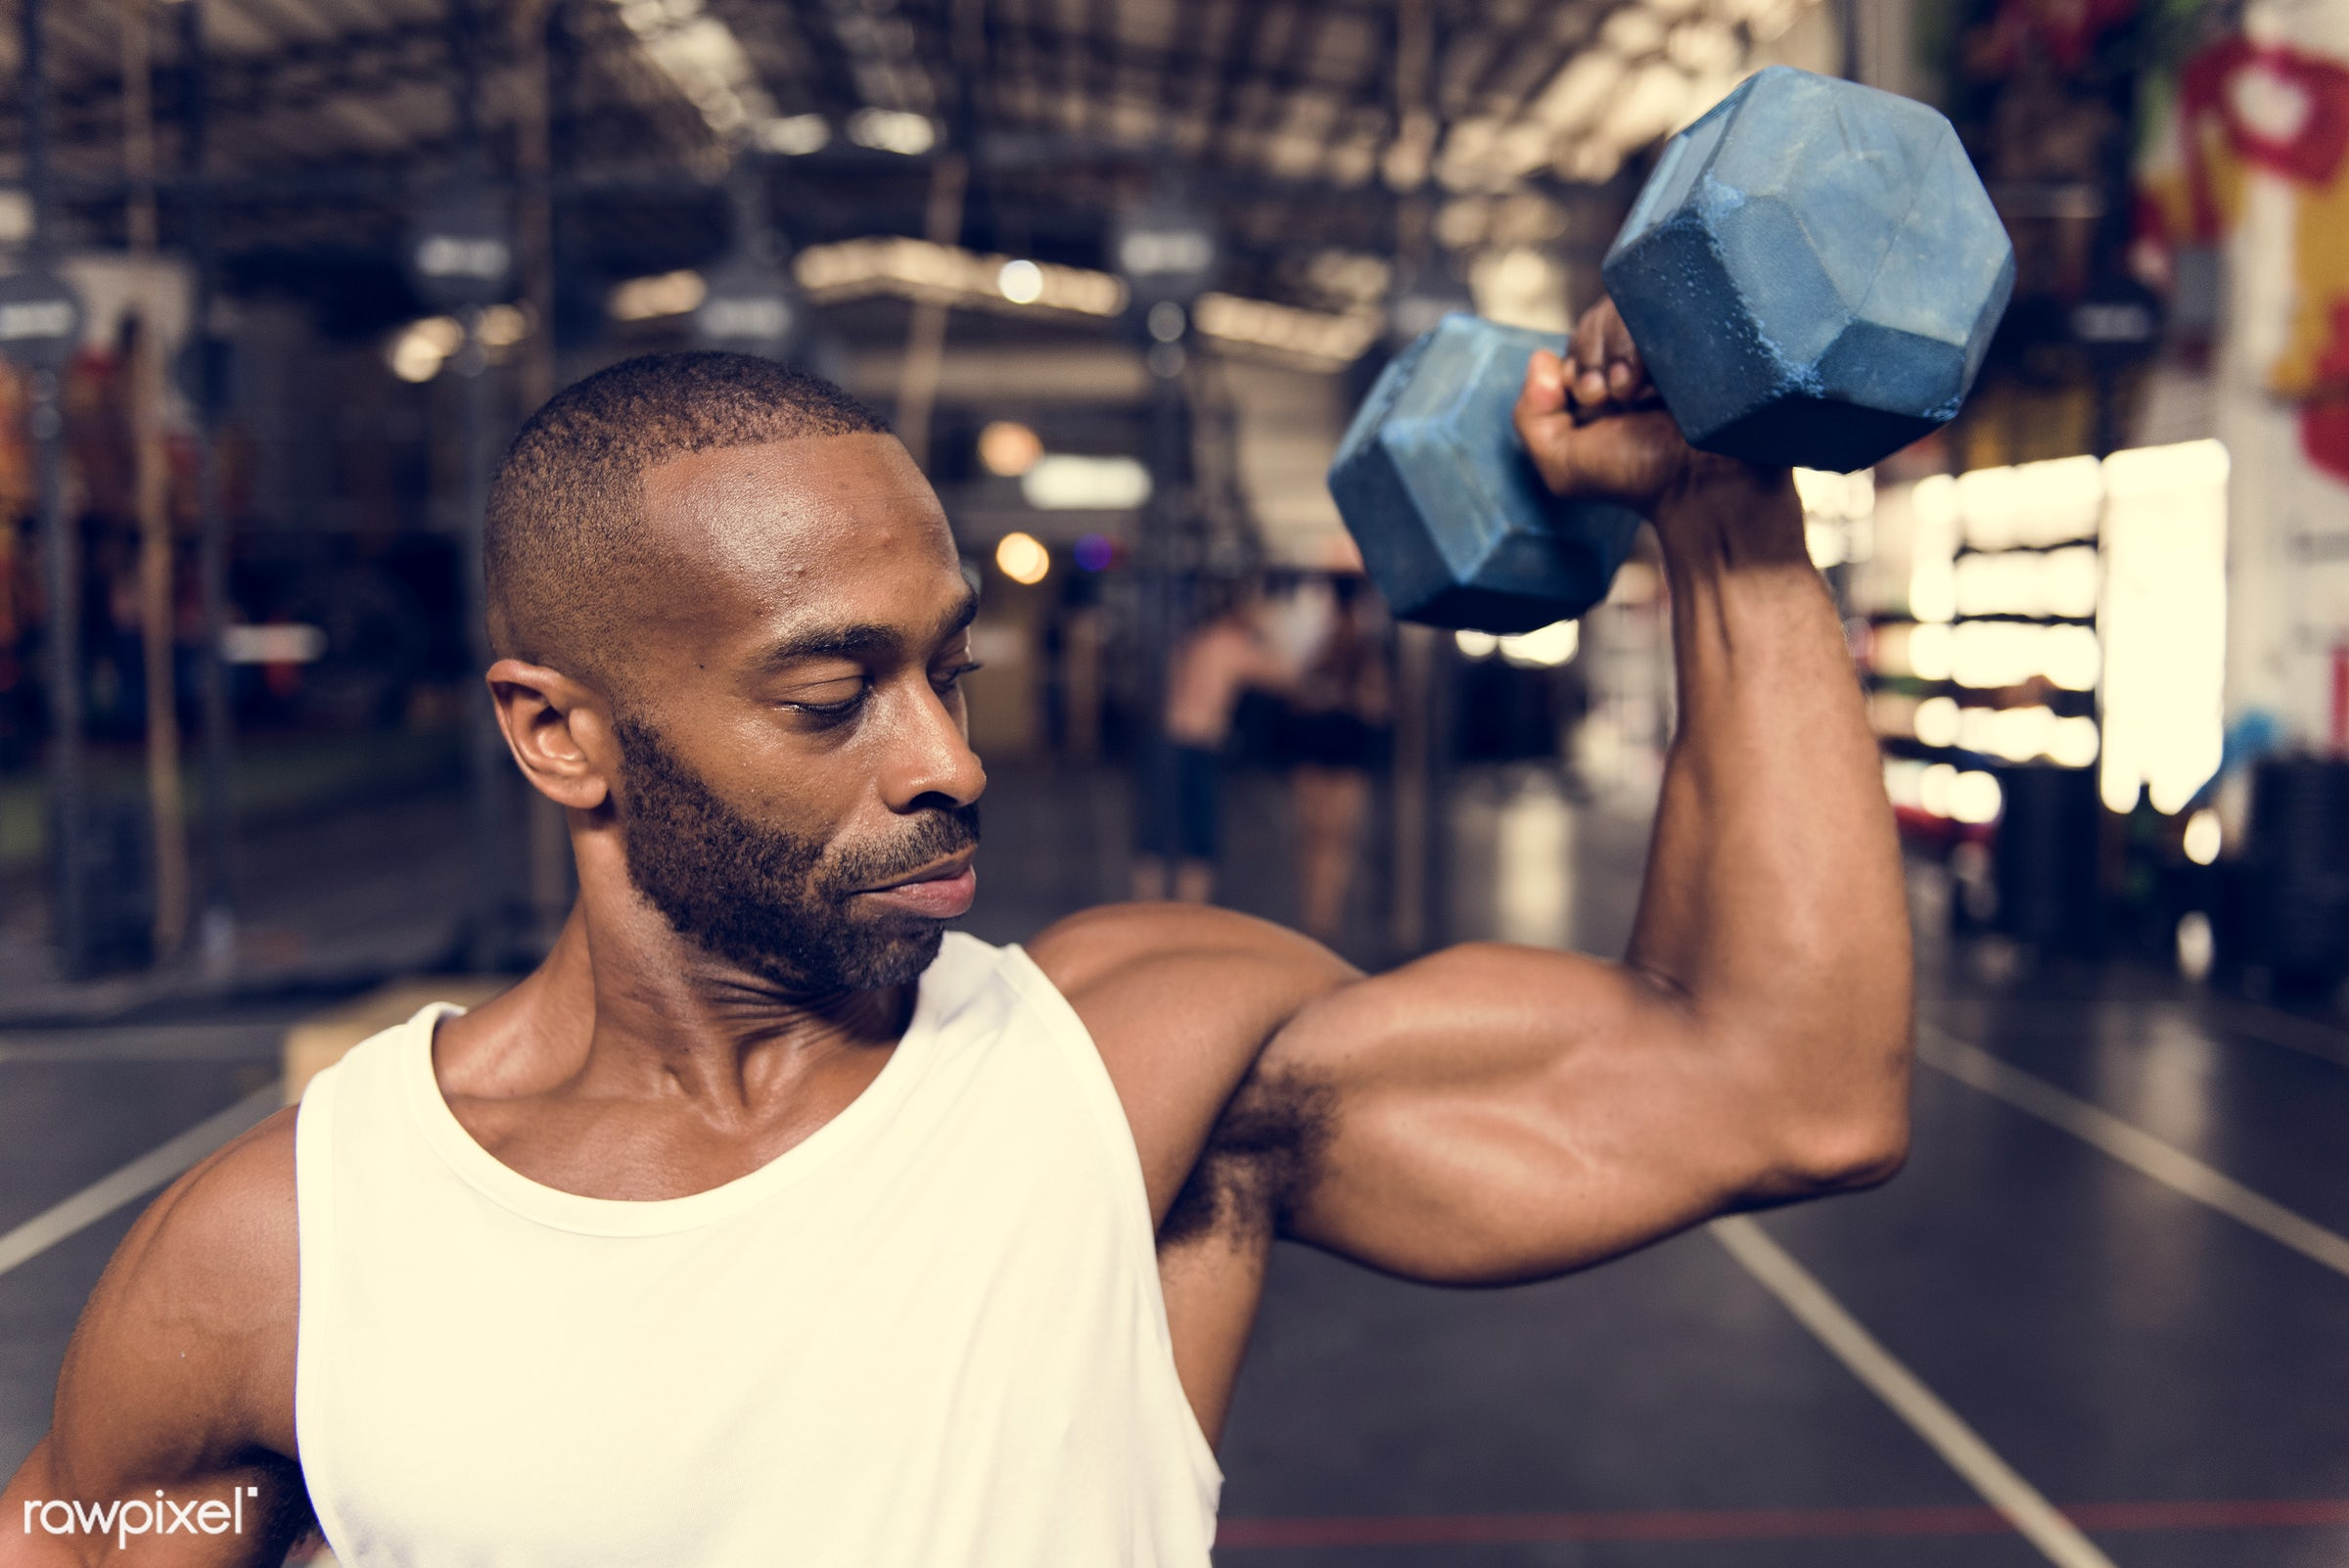 At the gym - achievement, active, activity, african descent, athlete, athletic, attractive, body, buff, dumbbells, fit,...